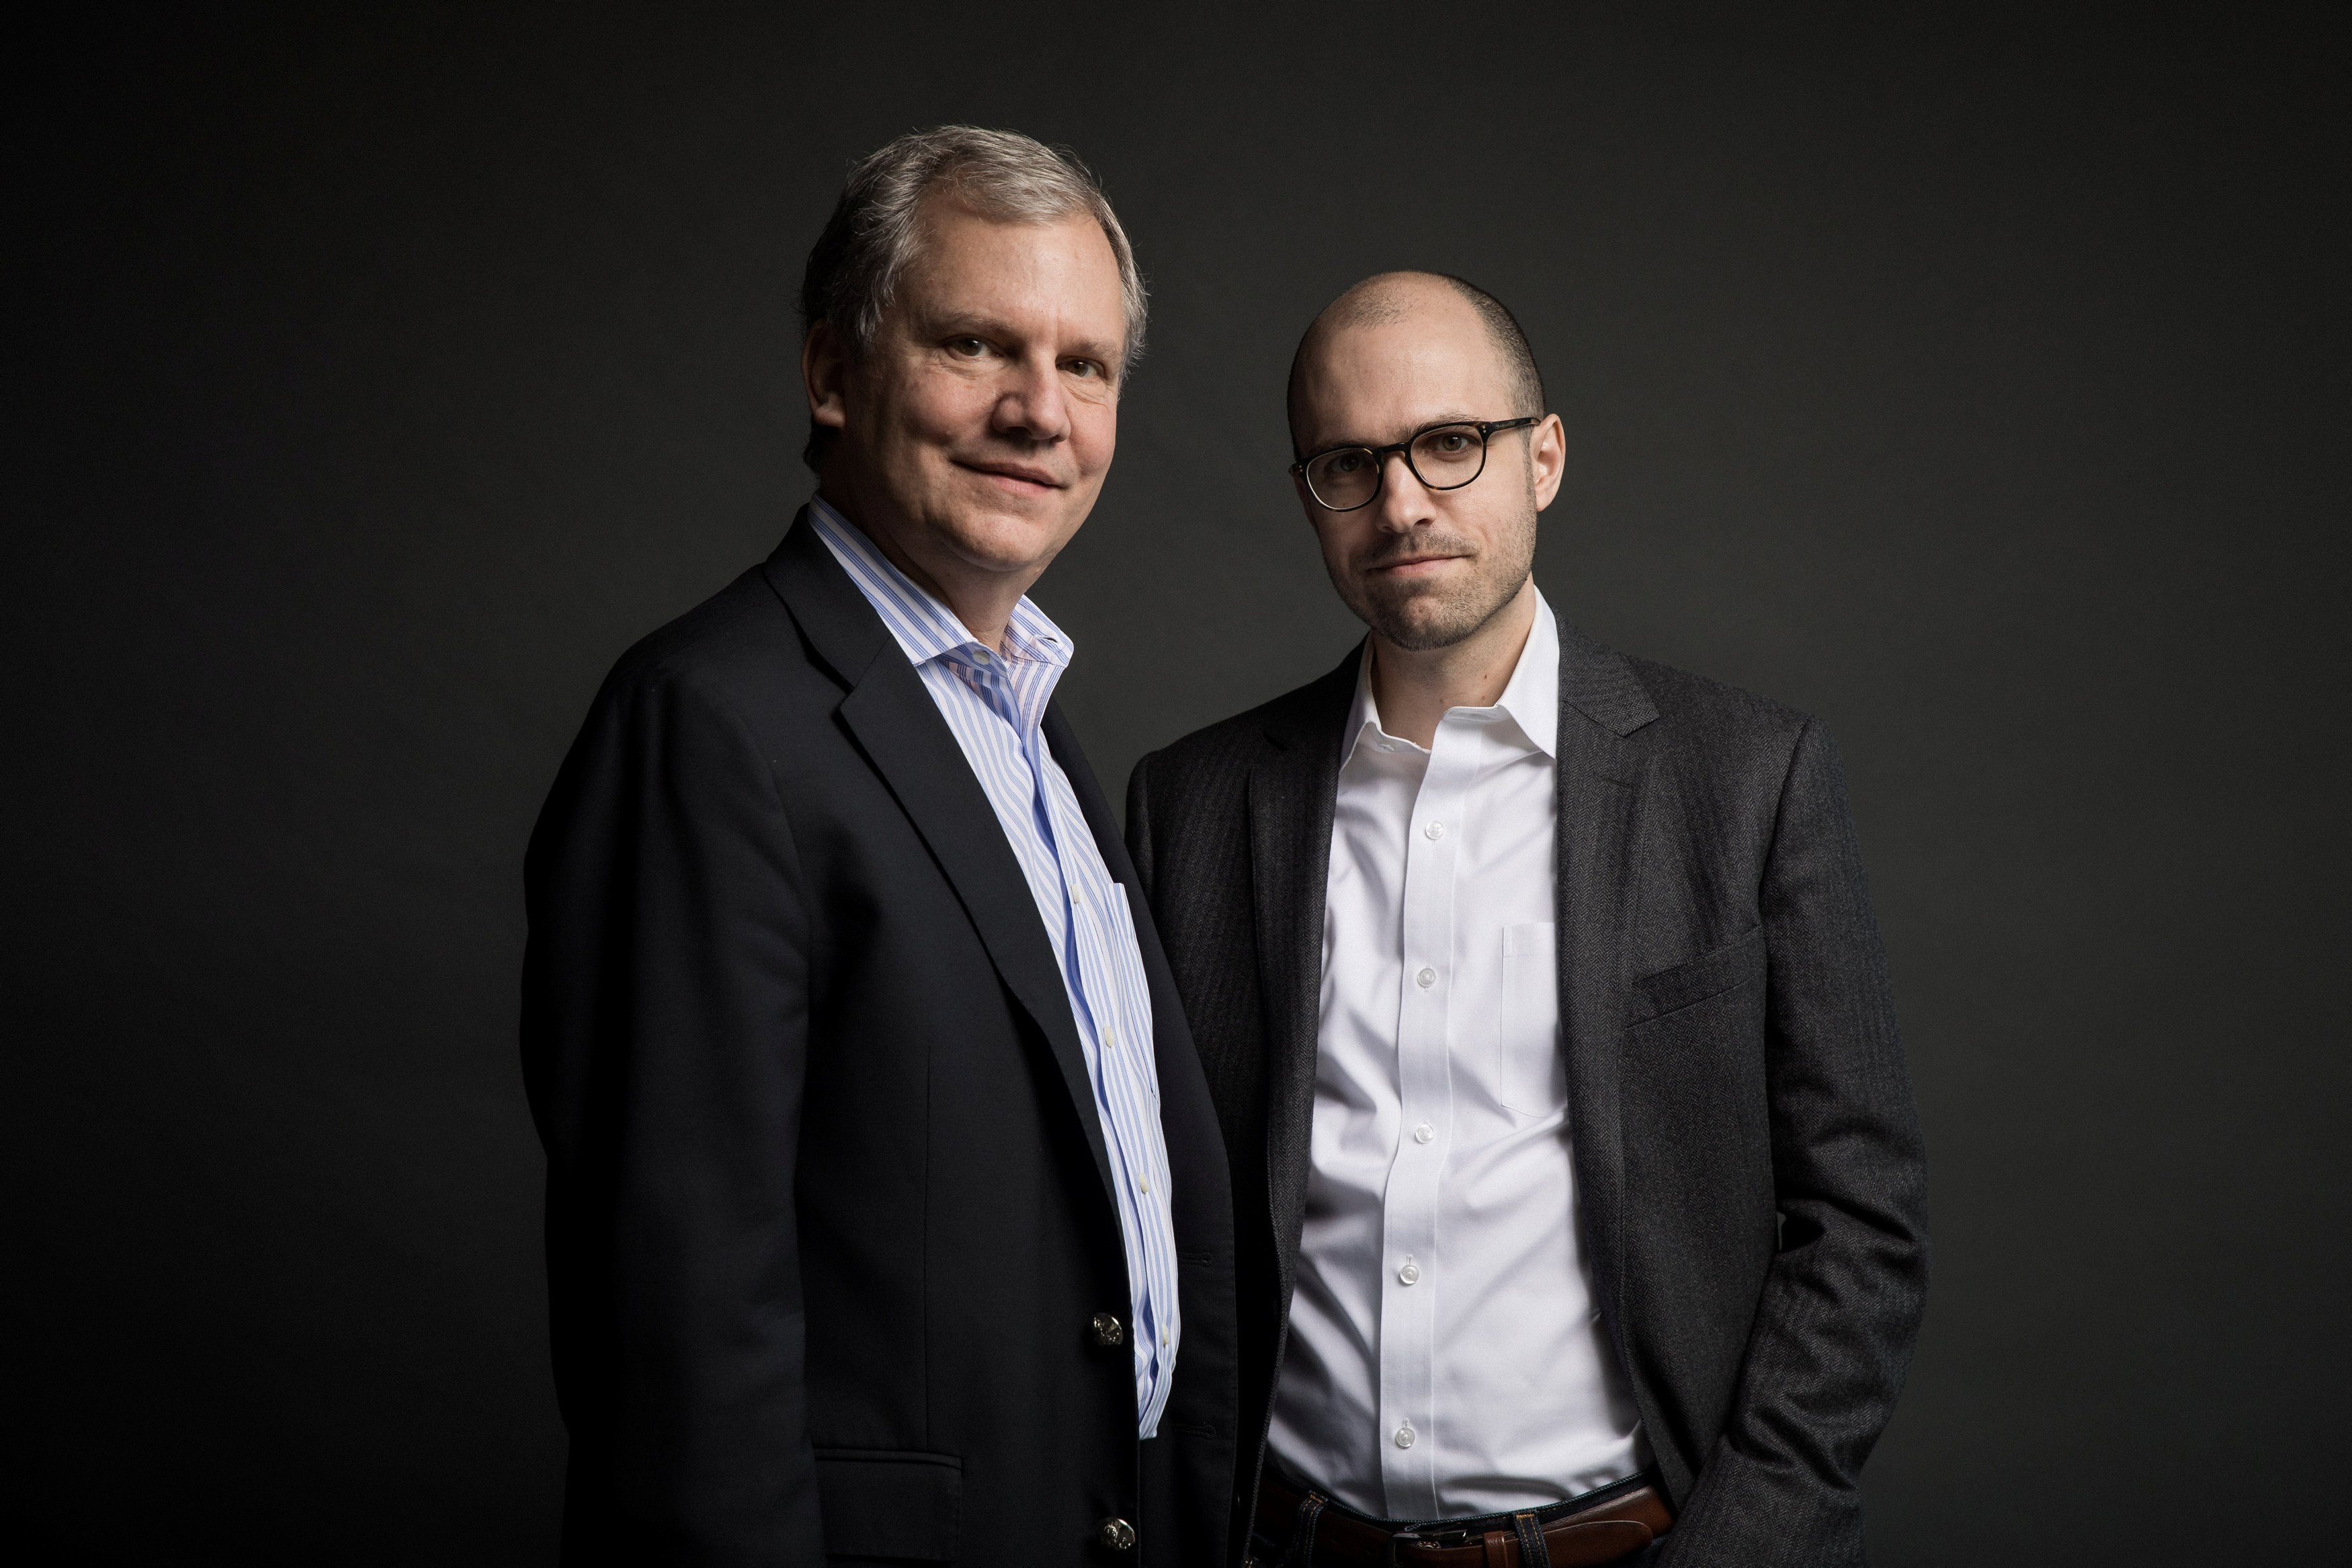 Image: Arthur Gregg (A.G.) Sulzberger and his father Arthur Ochs Sulzberger Jr. on the 16th floor of the New York Times building in New York